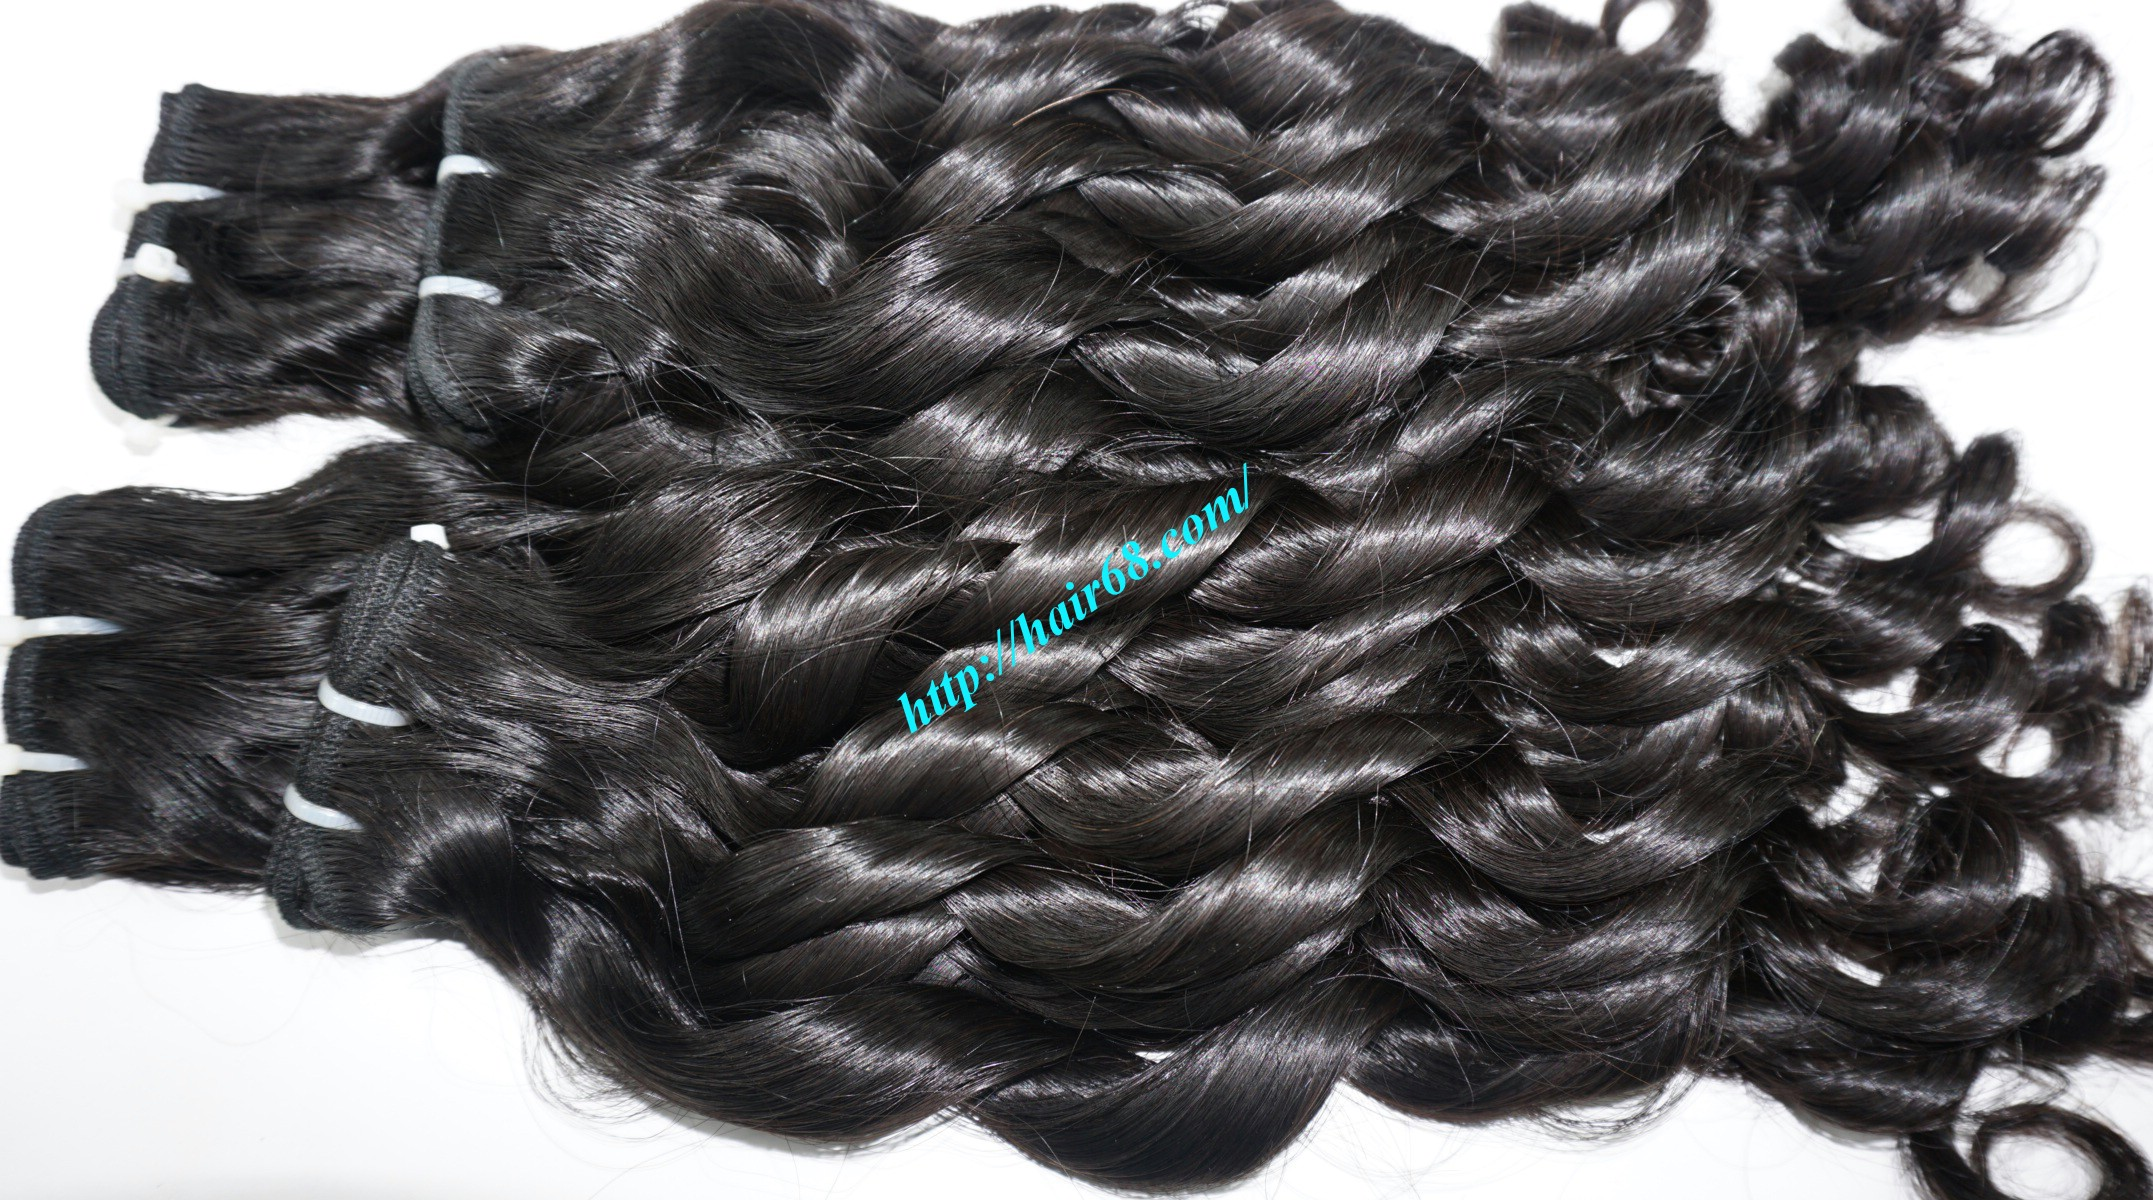 20 inch - Weave Loose Curly Hair Extensions - Double Drawn 14